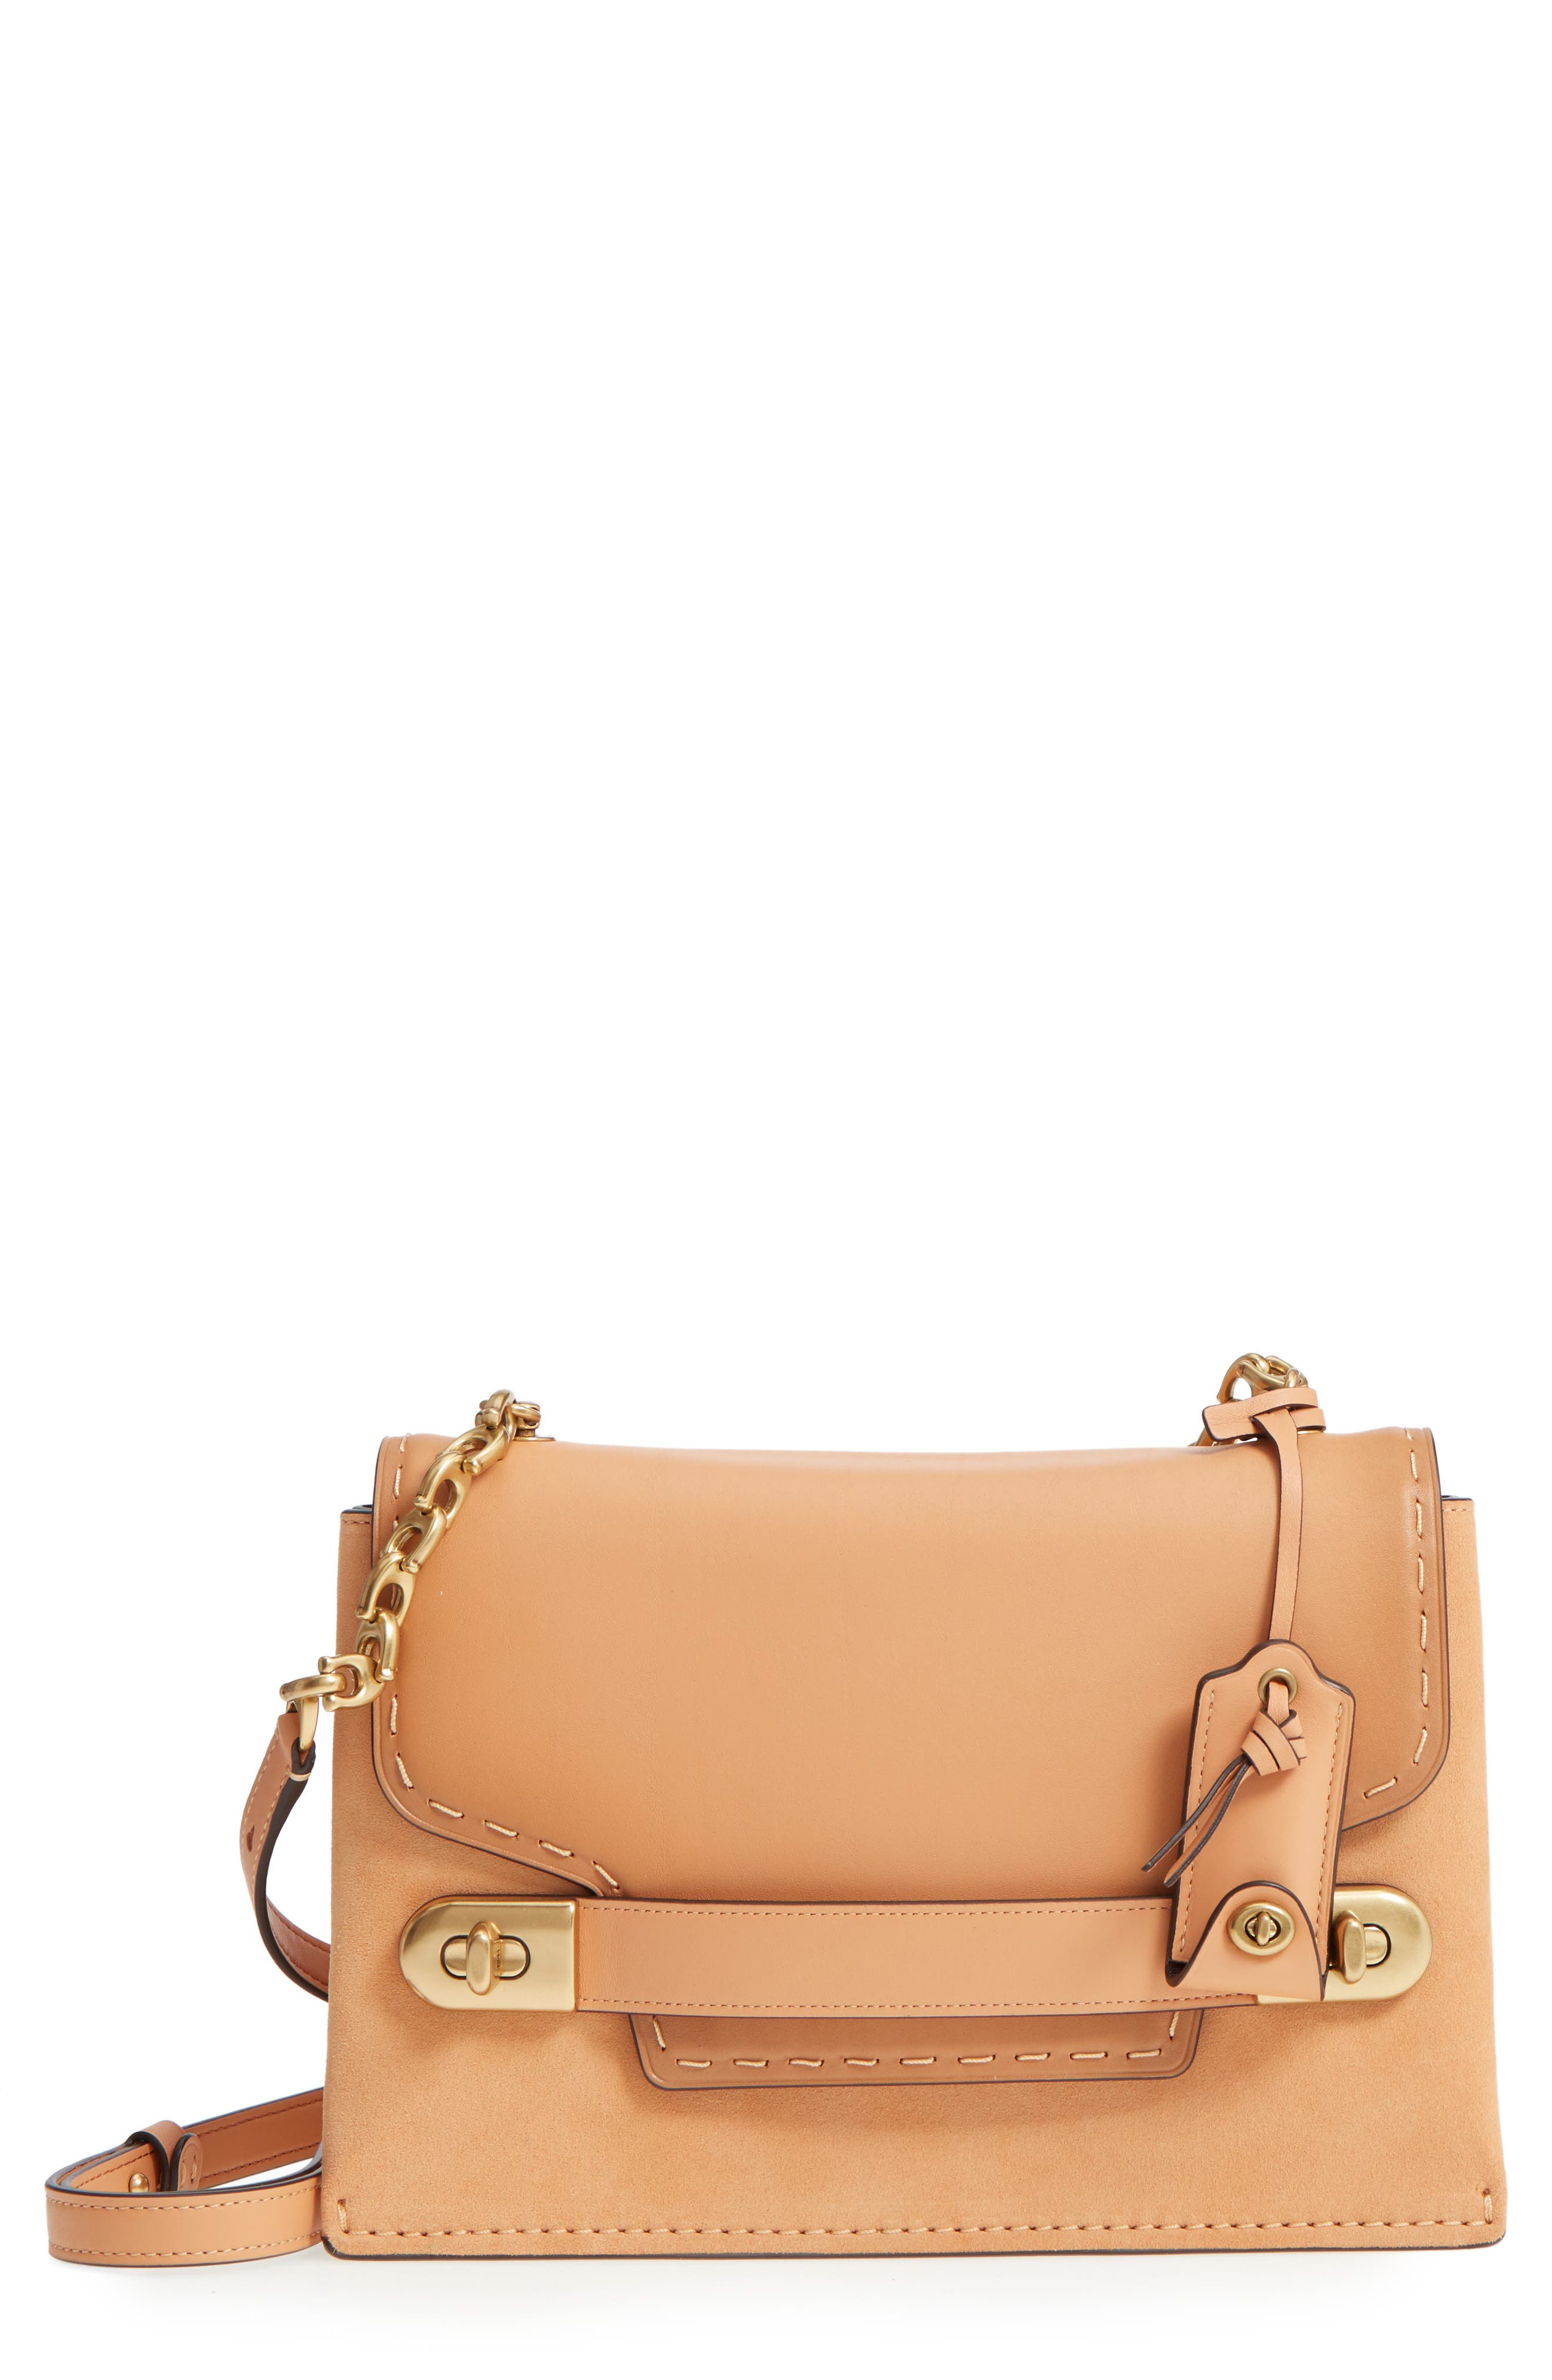 COACH 1941 Swagger Chain Leather Crossbody Bag